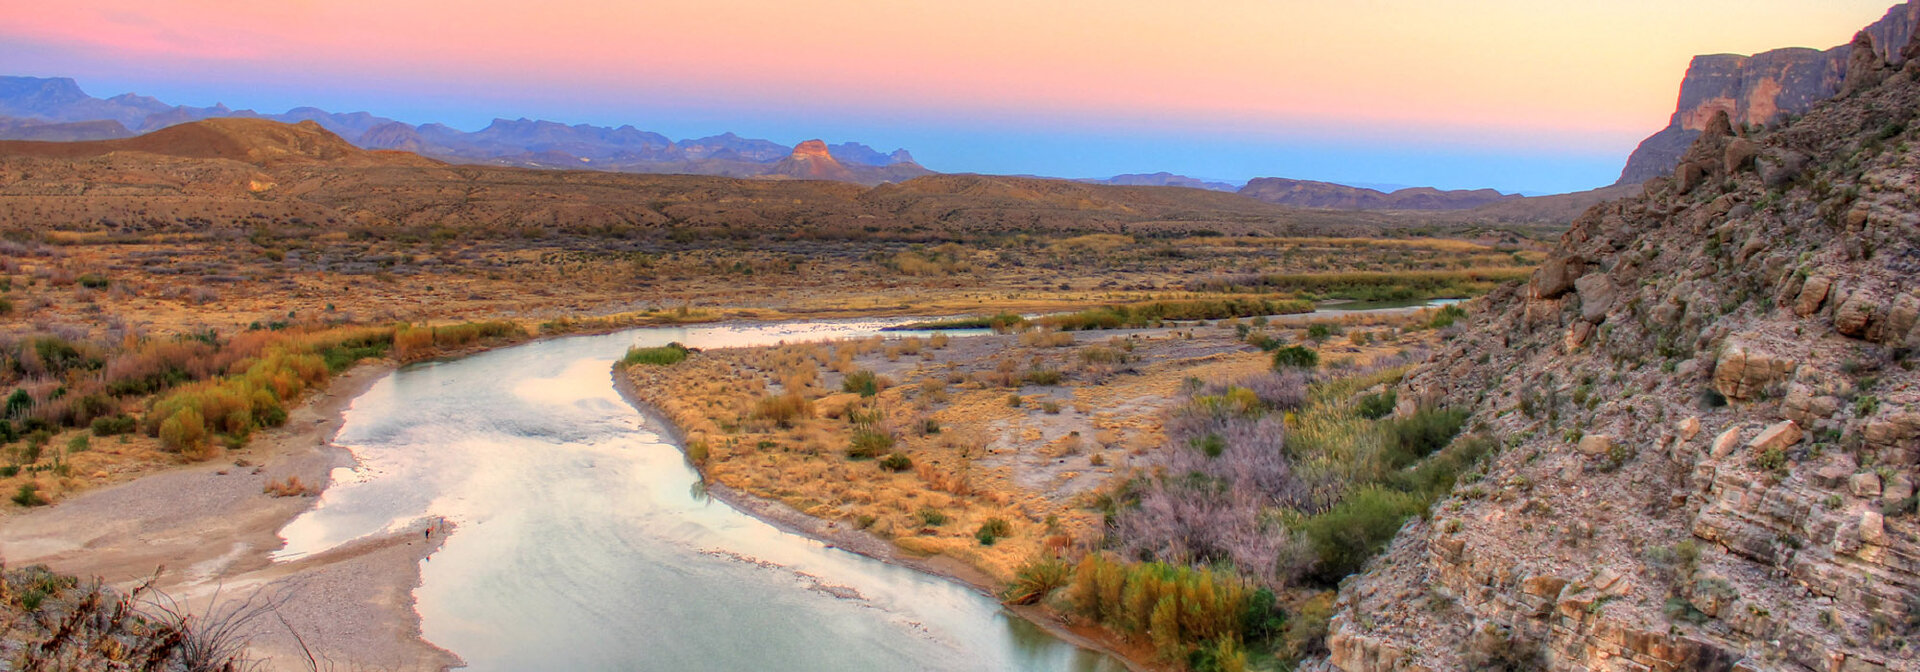 Big Bend National Park Epic Tour